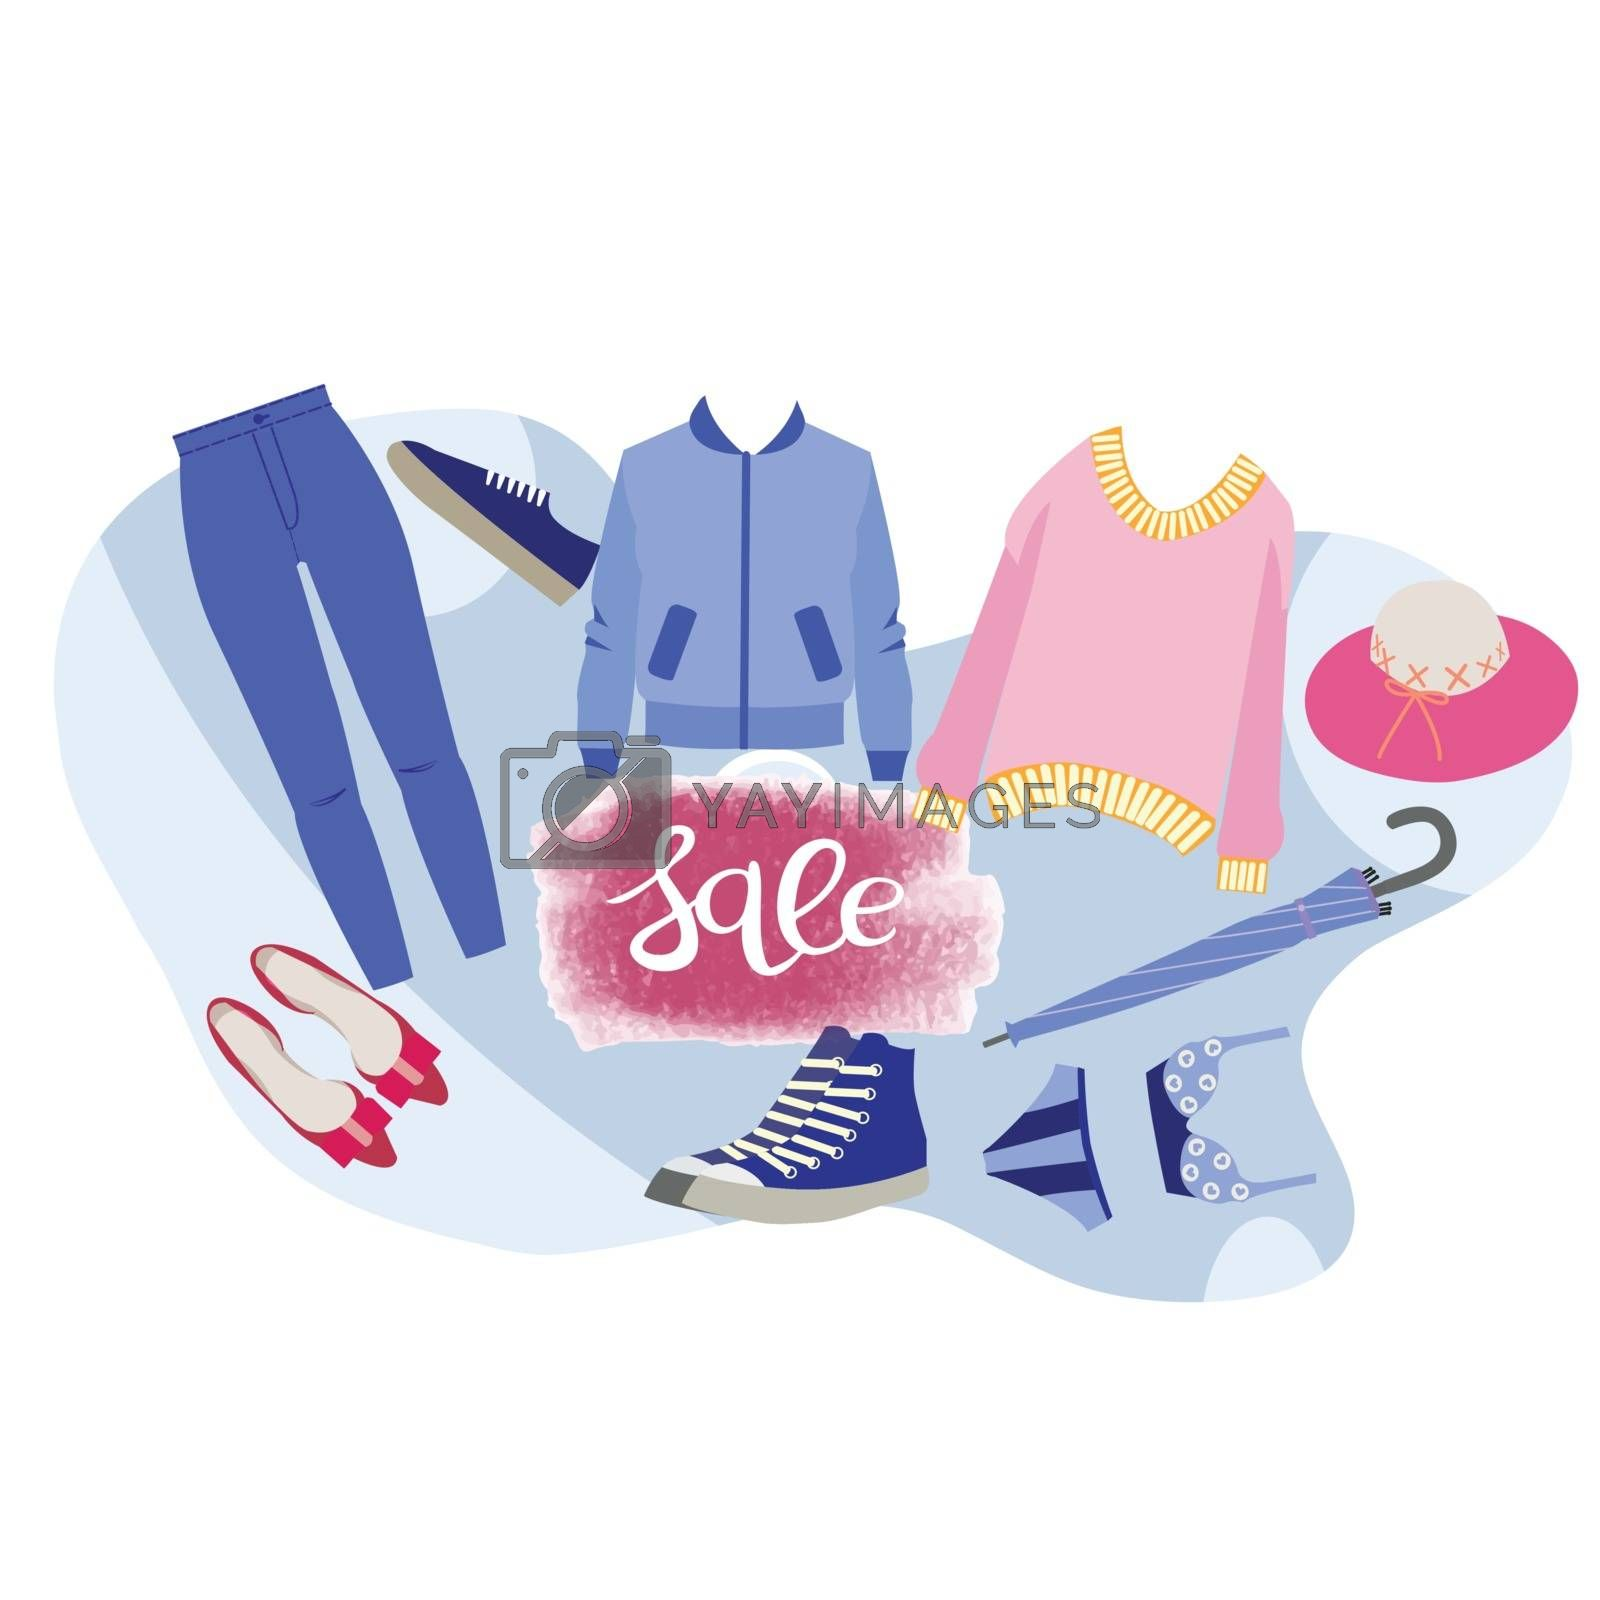 Vector hand-drawn Boutique Fashion store. Sale clothing and accessories banner. Sale, Big sale  background.  poster. End of the season concept. Illustration of sweater,  pants, jeans, umbrella, shoes, sneakers.